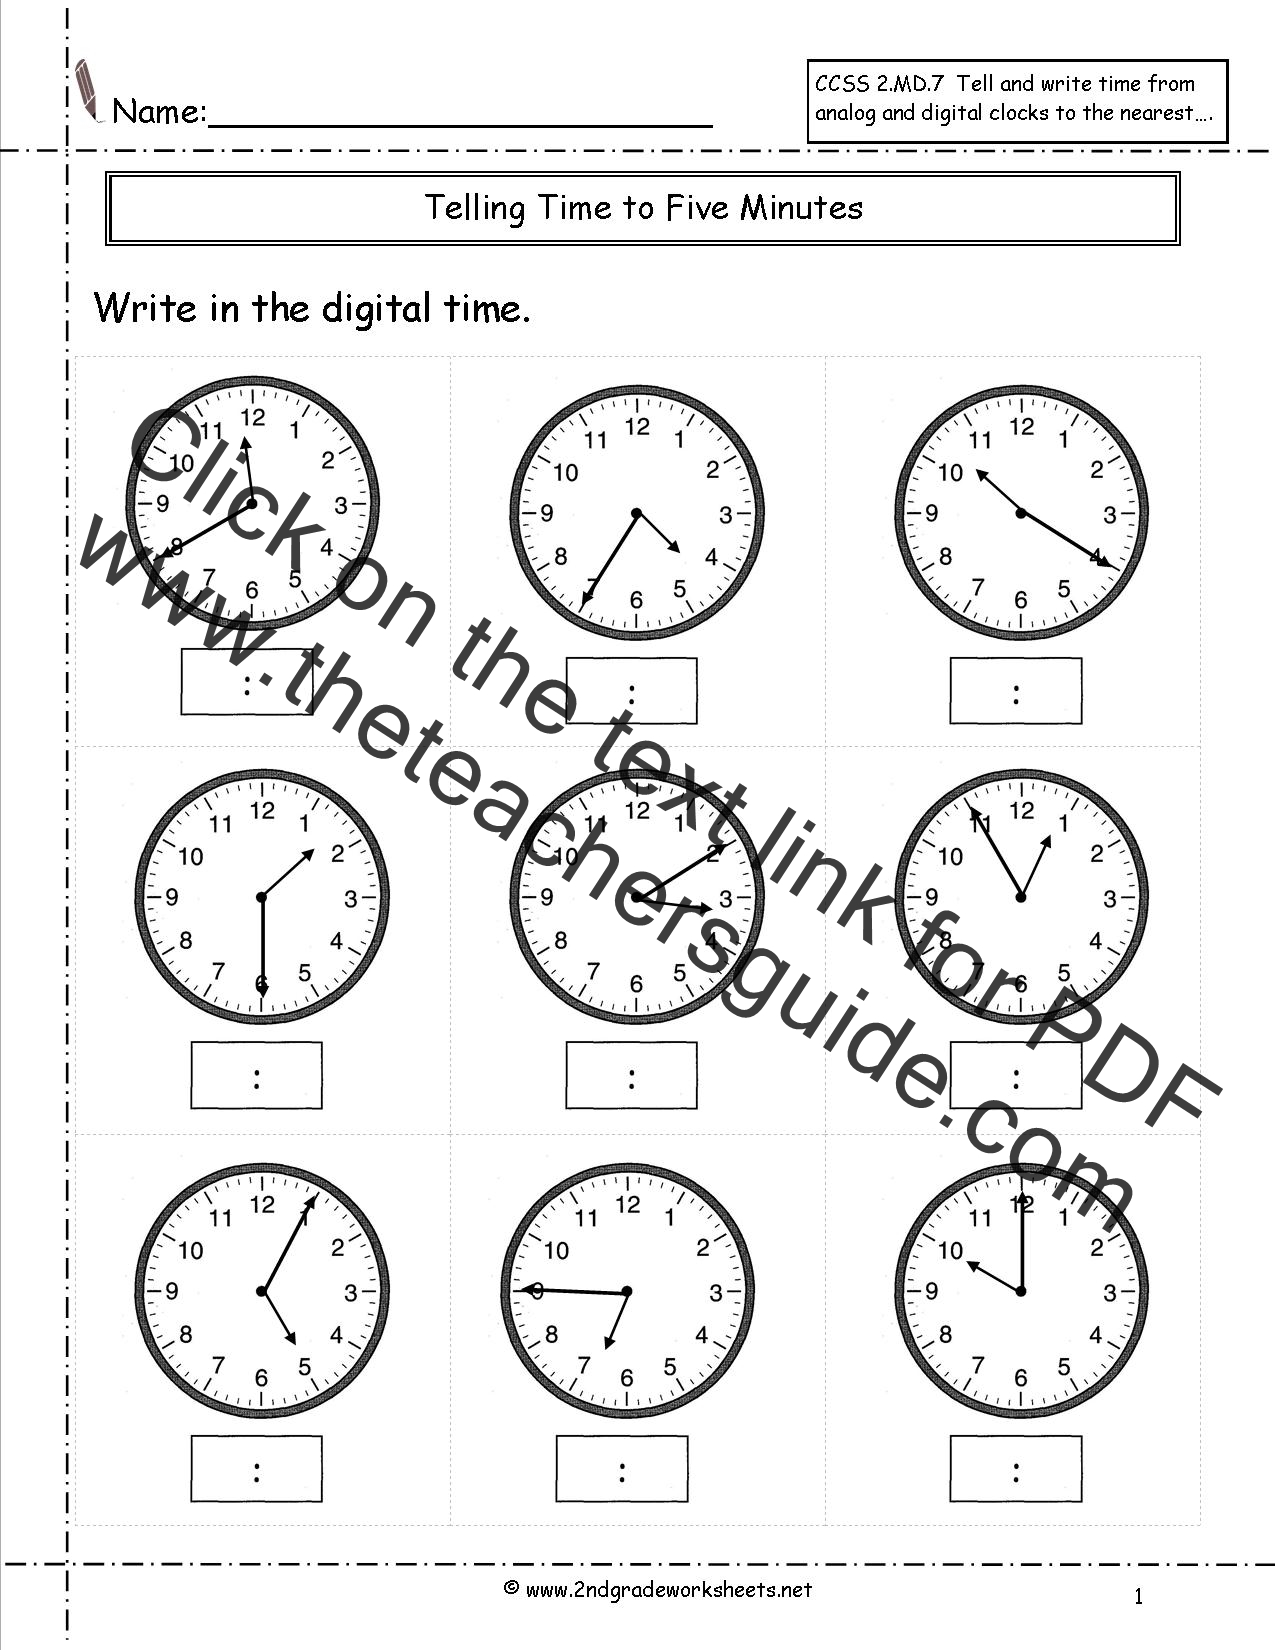 Telling time worksheets for 2nd grade